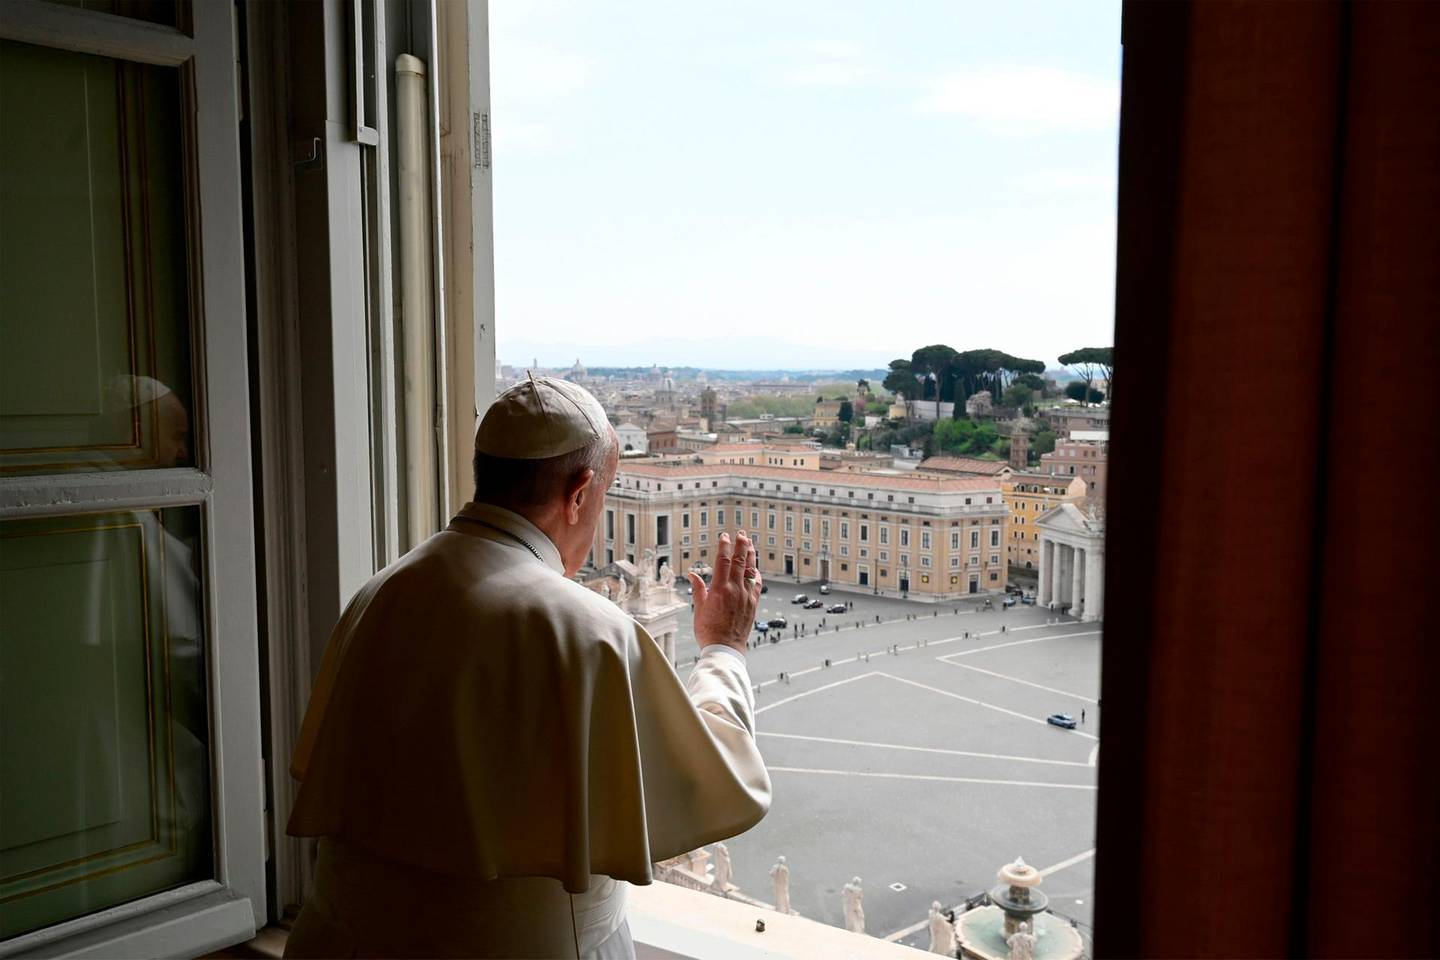 """This photo taken and released on April 13, 2020 by the Vatican Media shows Pope Francis deliver his blessing from the window of the Apostolic palace after deliver his message during a private Angelus prayer live broadcast from the palace's library in the Vatican on Easter Monday, during the lockdown aimed at curbing the spread of the COVID-19 infection, caused by the novel coronavirus.  RESTRICTED TO EDITORIAL USE - MANDATORY CREDIT """"AFP PHOTO / VATICAN MEDIA"""" - NO MARKETING - NO ADVERTISING CAMPAIGNS - DISTRIBUTED AS A SERVICE TO CLIENTS  / AFP / VATICAN MEDIA / Handout / RESTRICTED TO EDITORIAL USE - MANDATORY CREDIT """"AFP PHOTO / VATICAN MEDIA"""" - NO MARKETING - NO ADVERTISING CAMPAIGNS - DISTRIBUTED AS A SERVICE TO CLIENTS"""